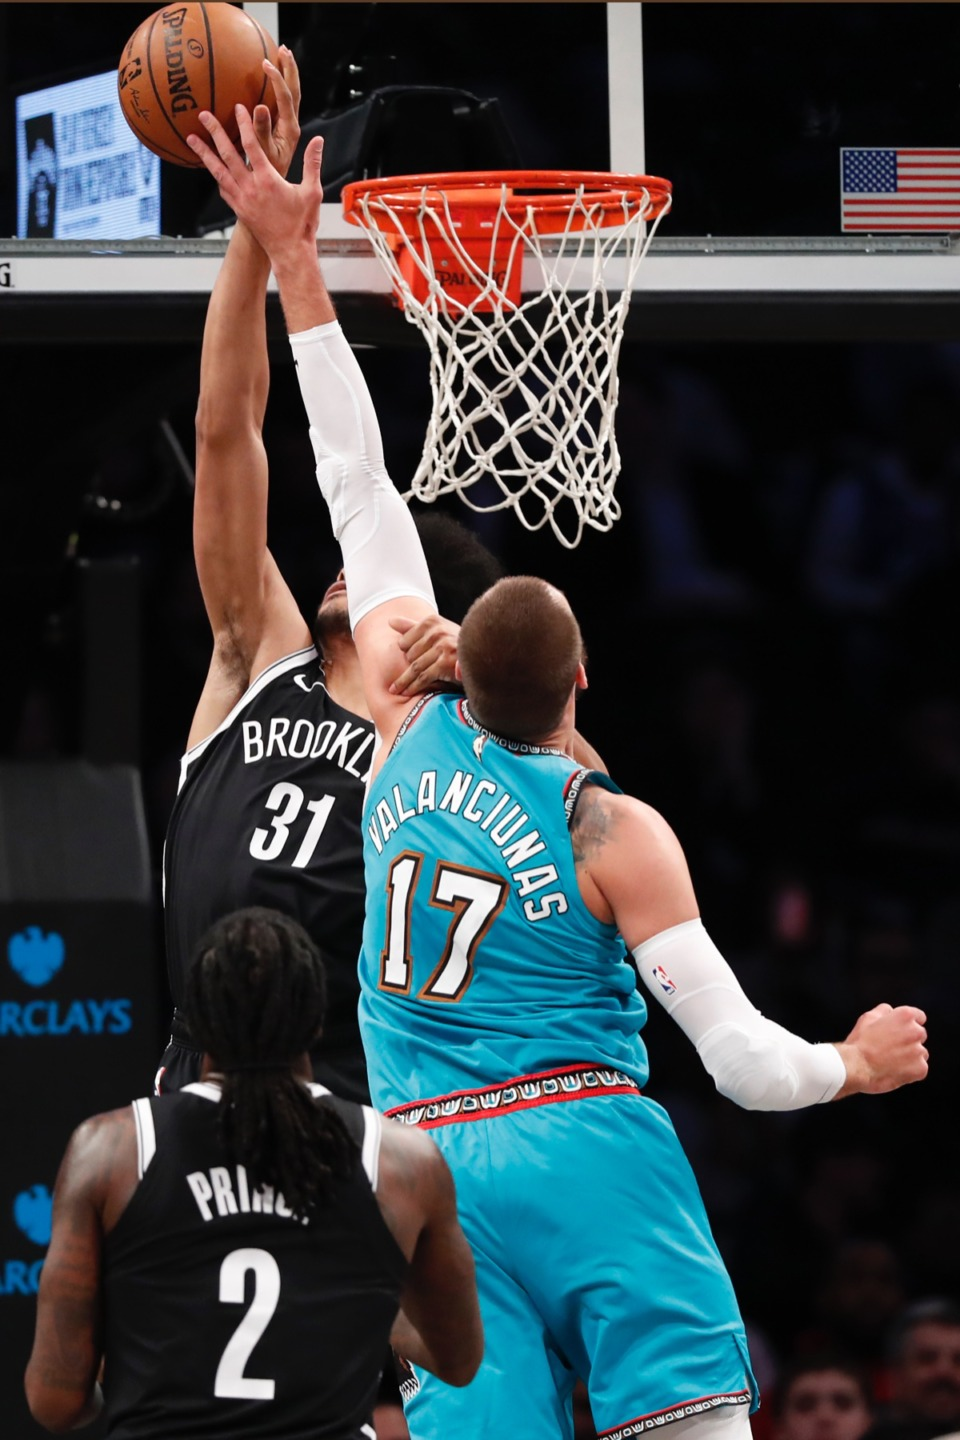 <strong>Brooklyn Nets center Jarrett Allen (31) grabs the shooting arm of Memphis Grizzlies center Jonas Valanciunas (17) and fouls him March 4, 2020, in New York. Brooklyn Nets forward Taurean Prince (2) watches from the floor, lower left.</strong> (Kathy Willens/AP)